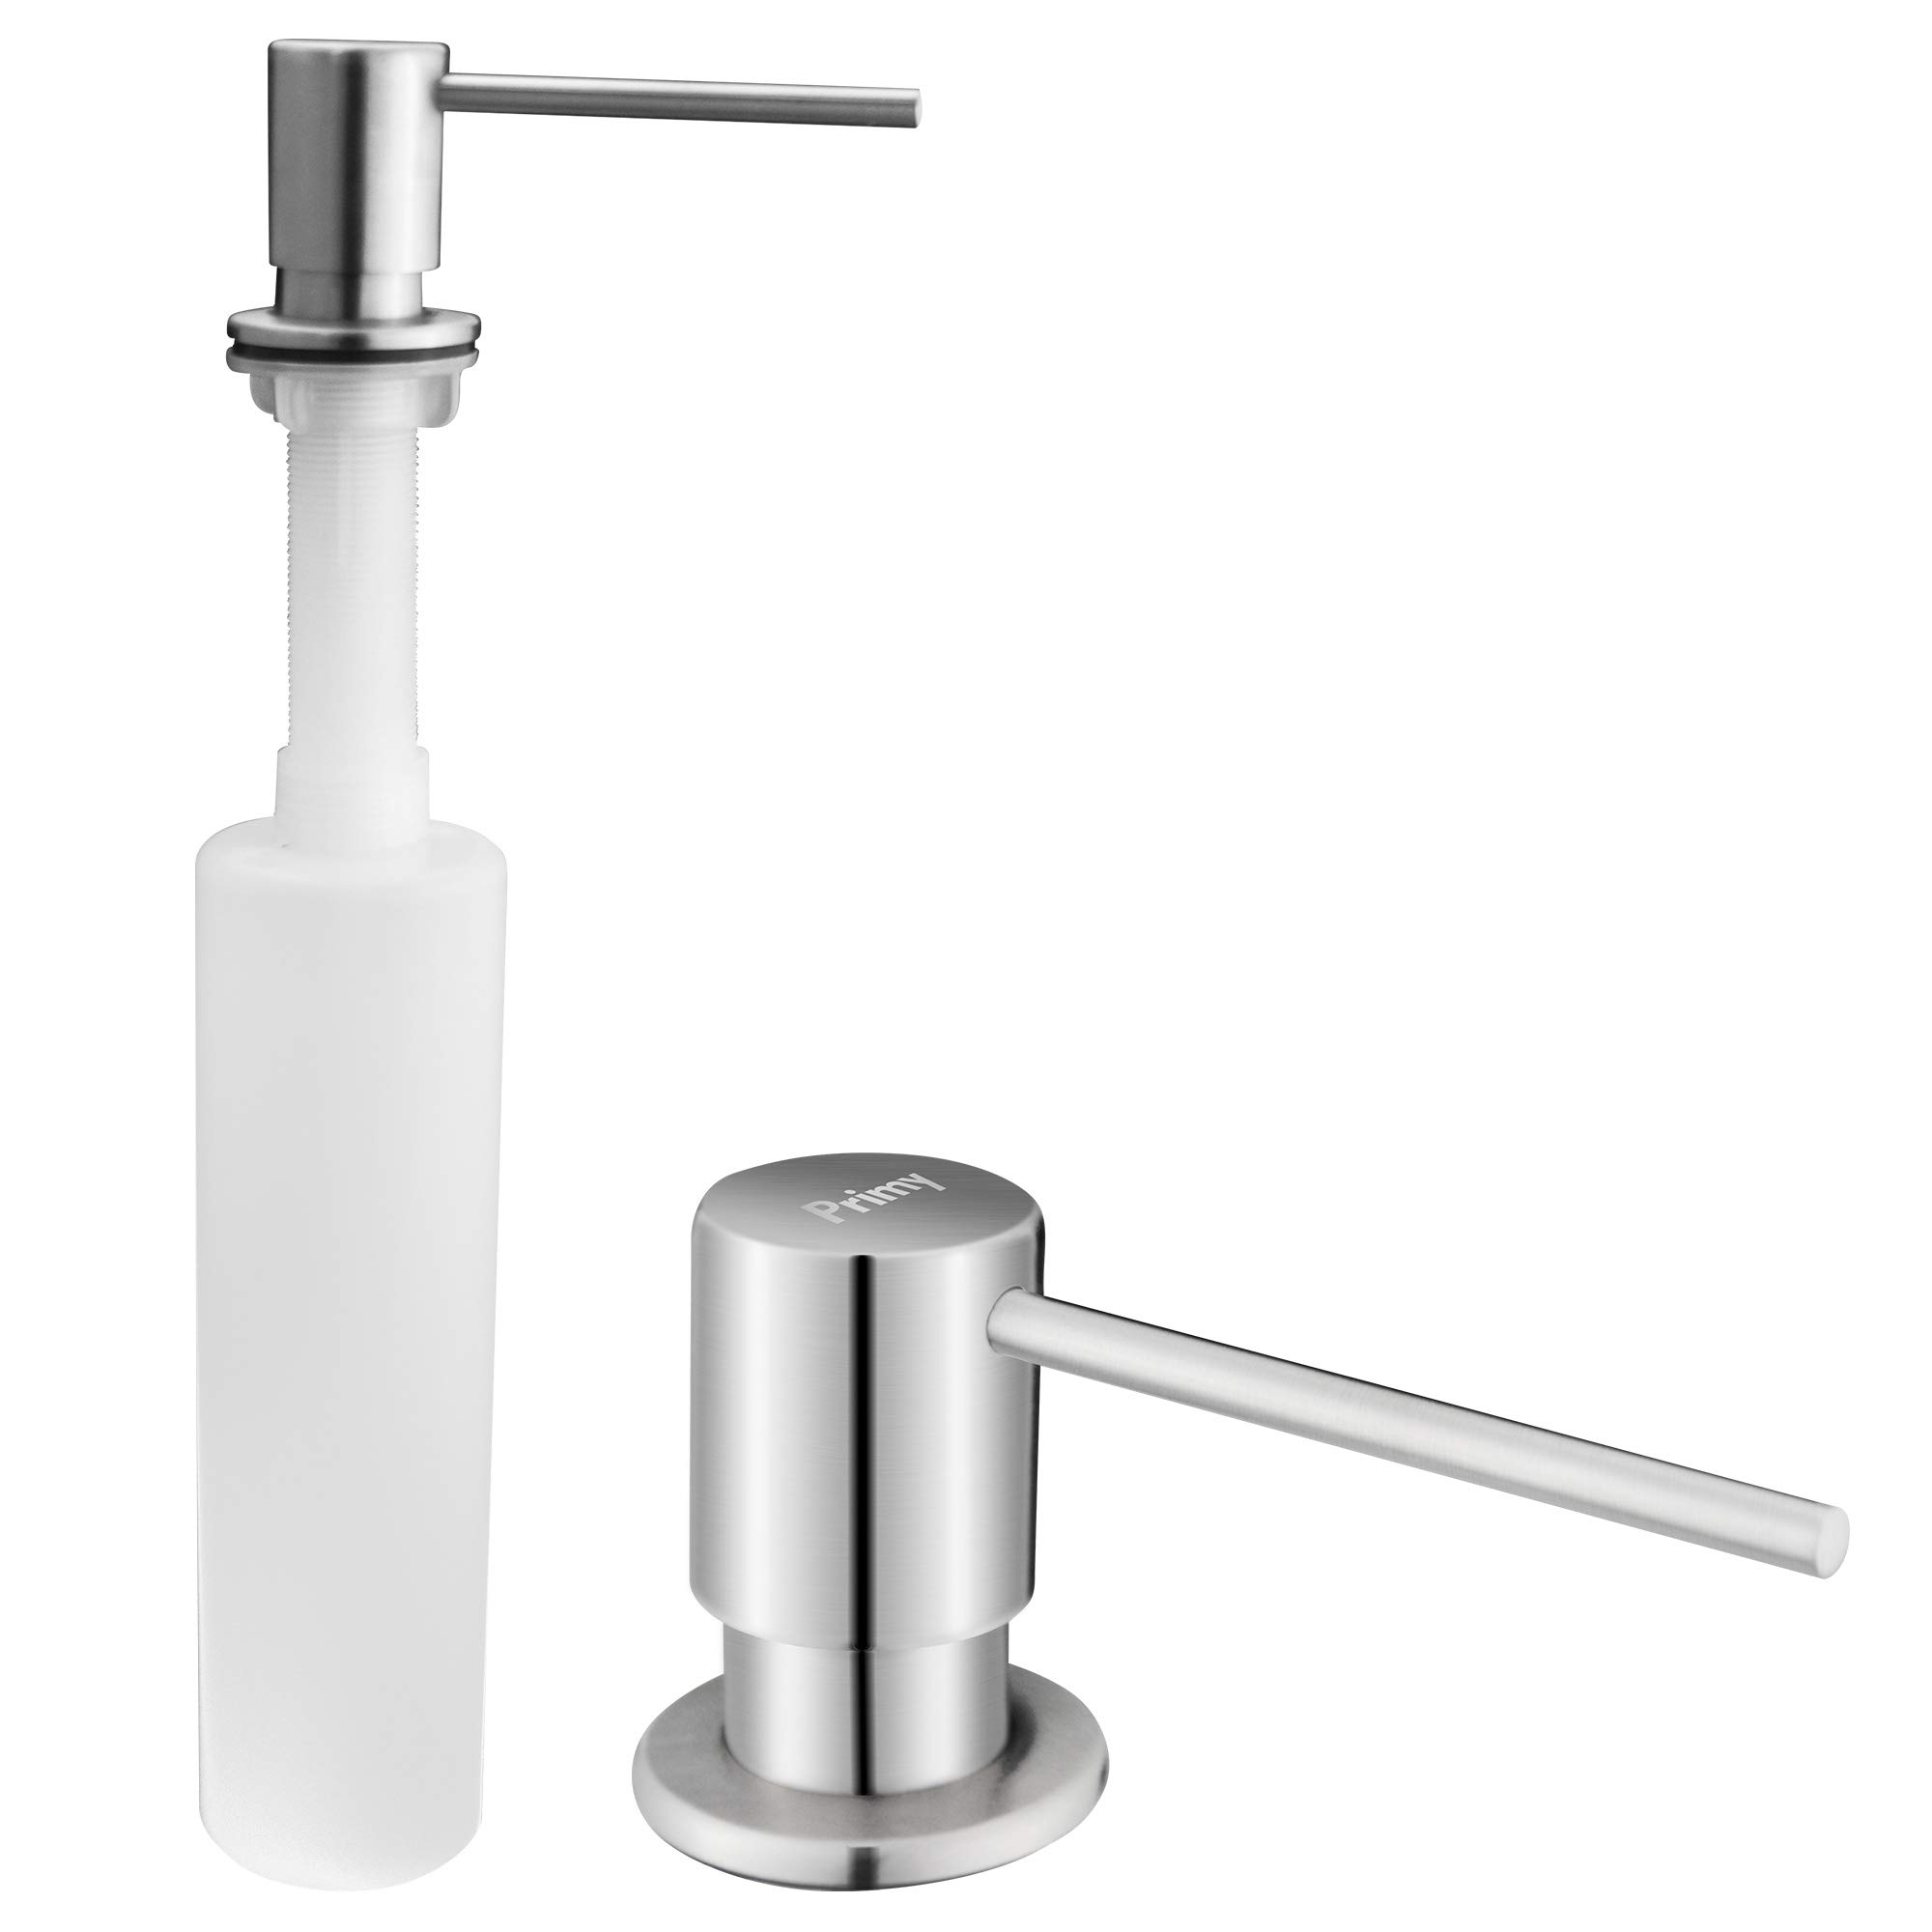 Primy Soap Dispenser for Kitchen Sink Refill From The Top with Large 17 oz Bottle - 3.5 Inch Threaded Tube for Granite Installation - 4 Inch Extra Long Spout - Stainless Steel Dispenser